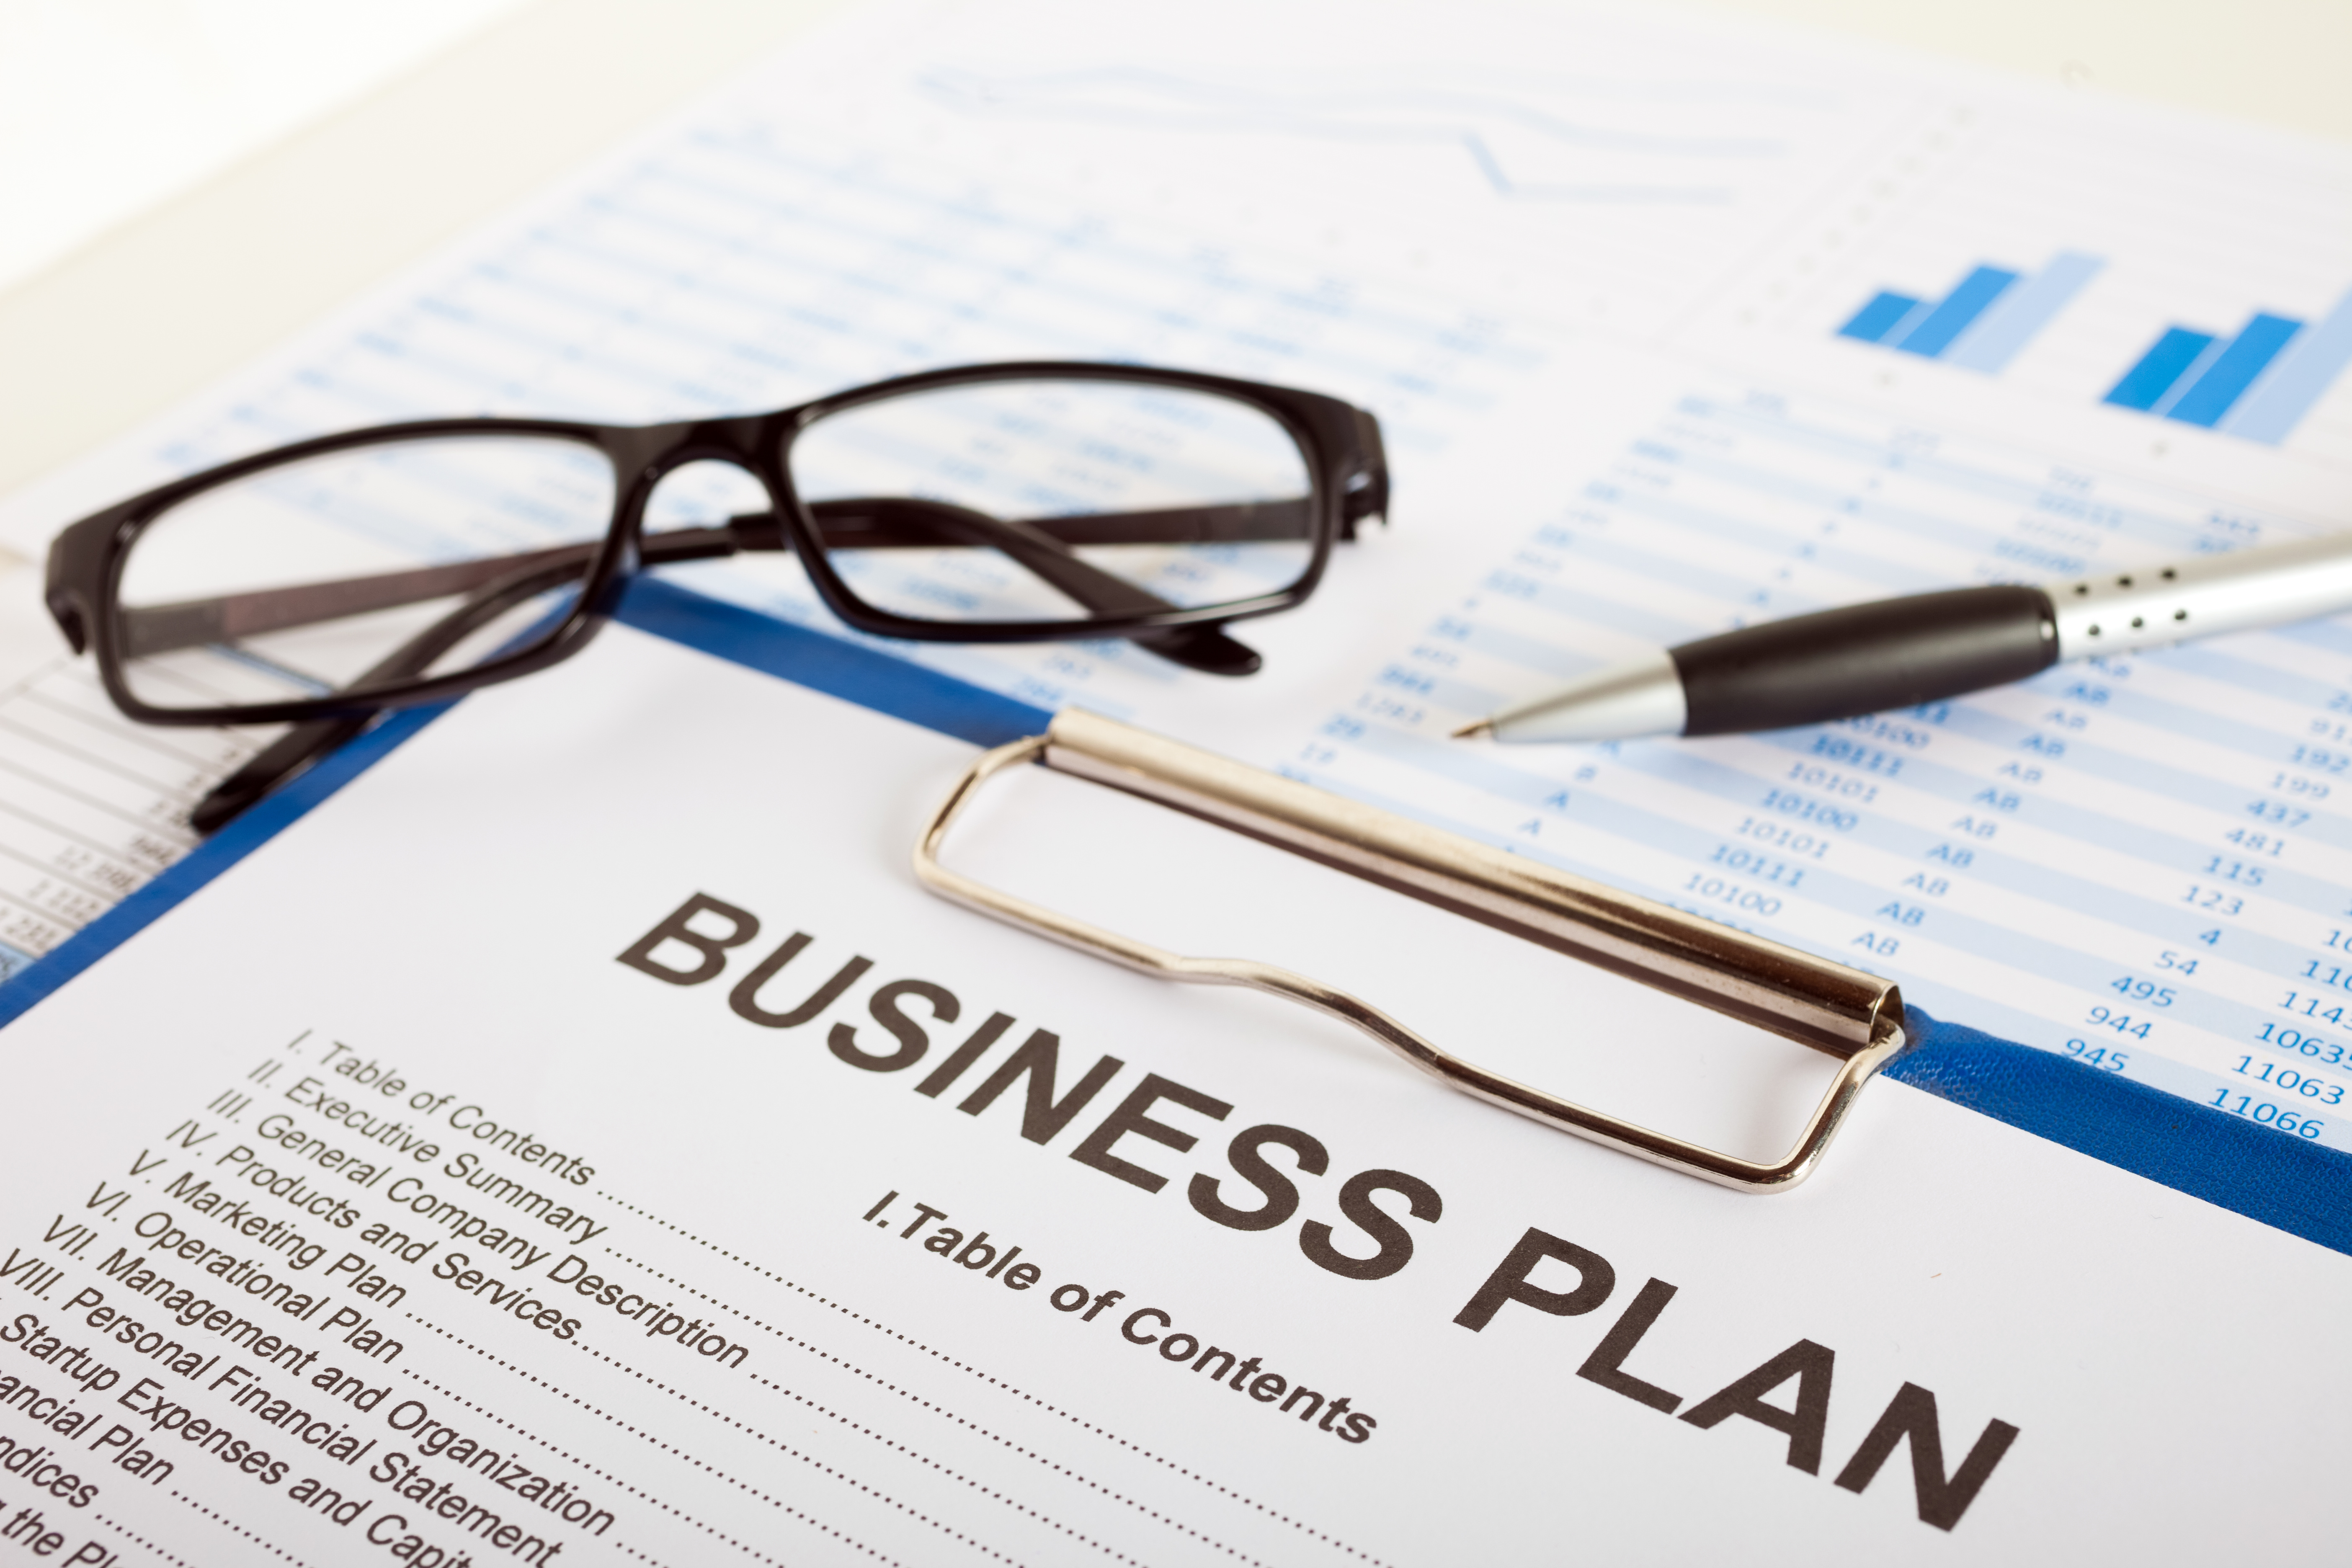 Business plan writers in colorado